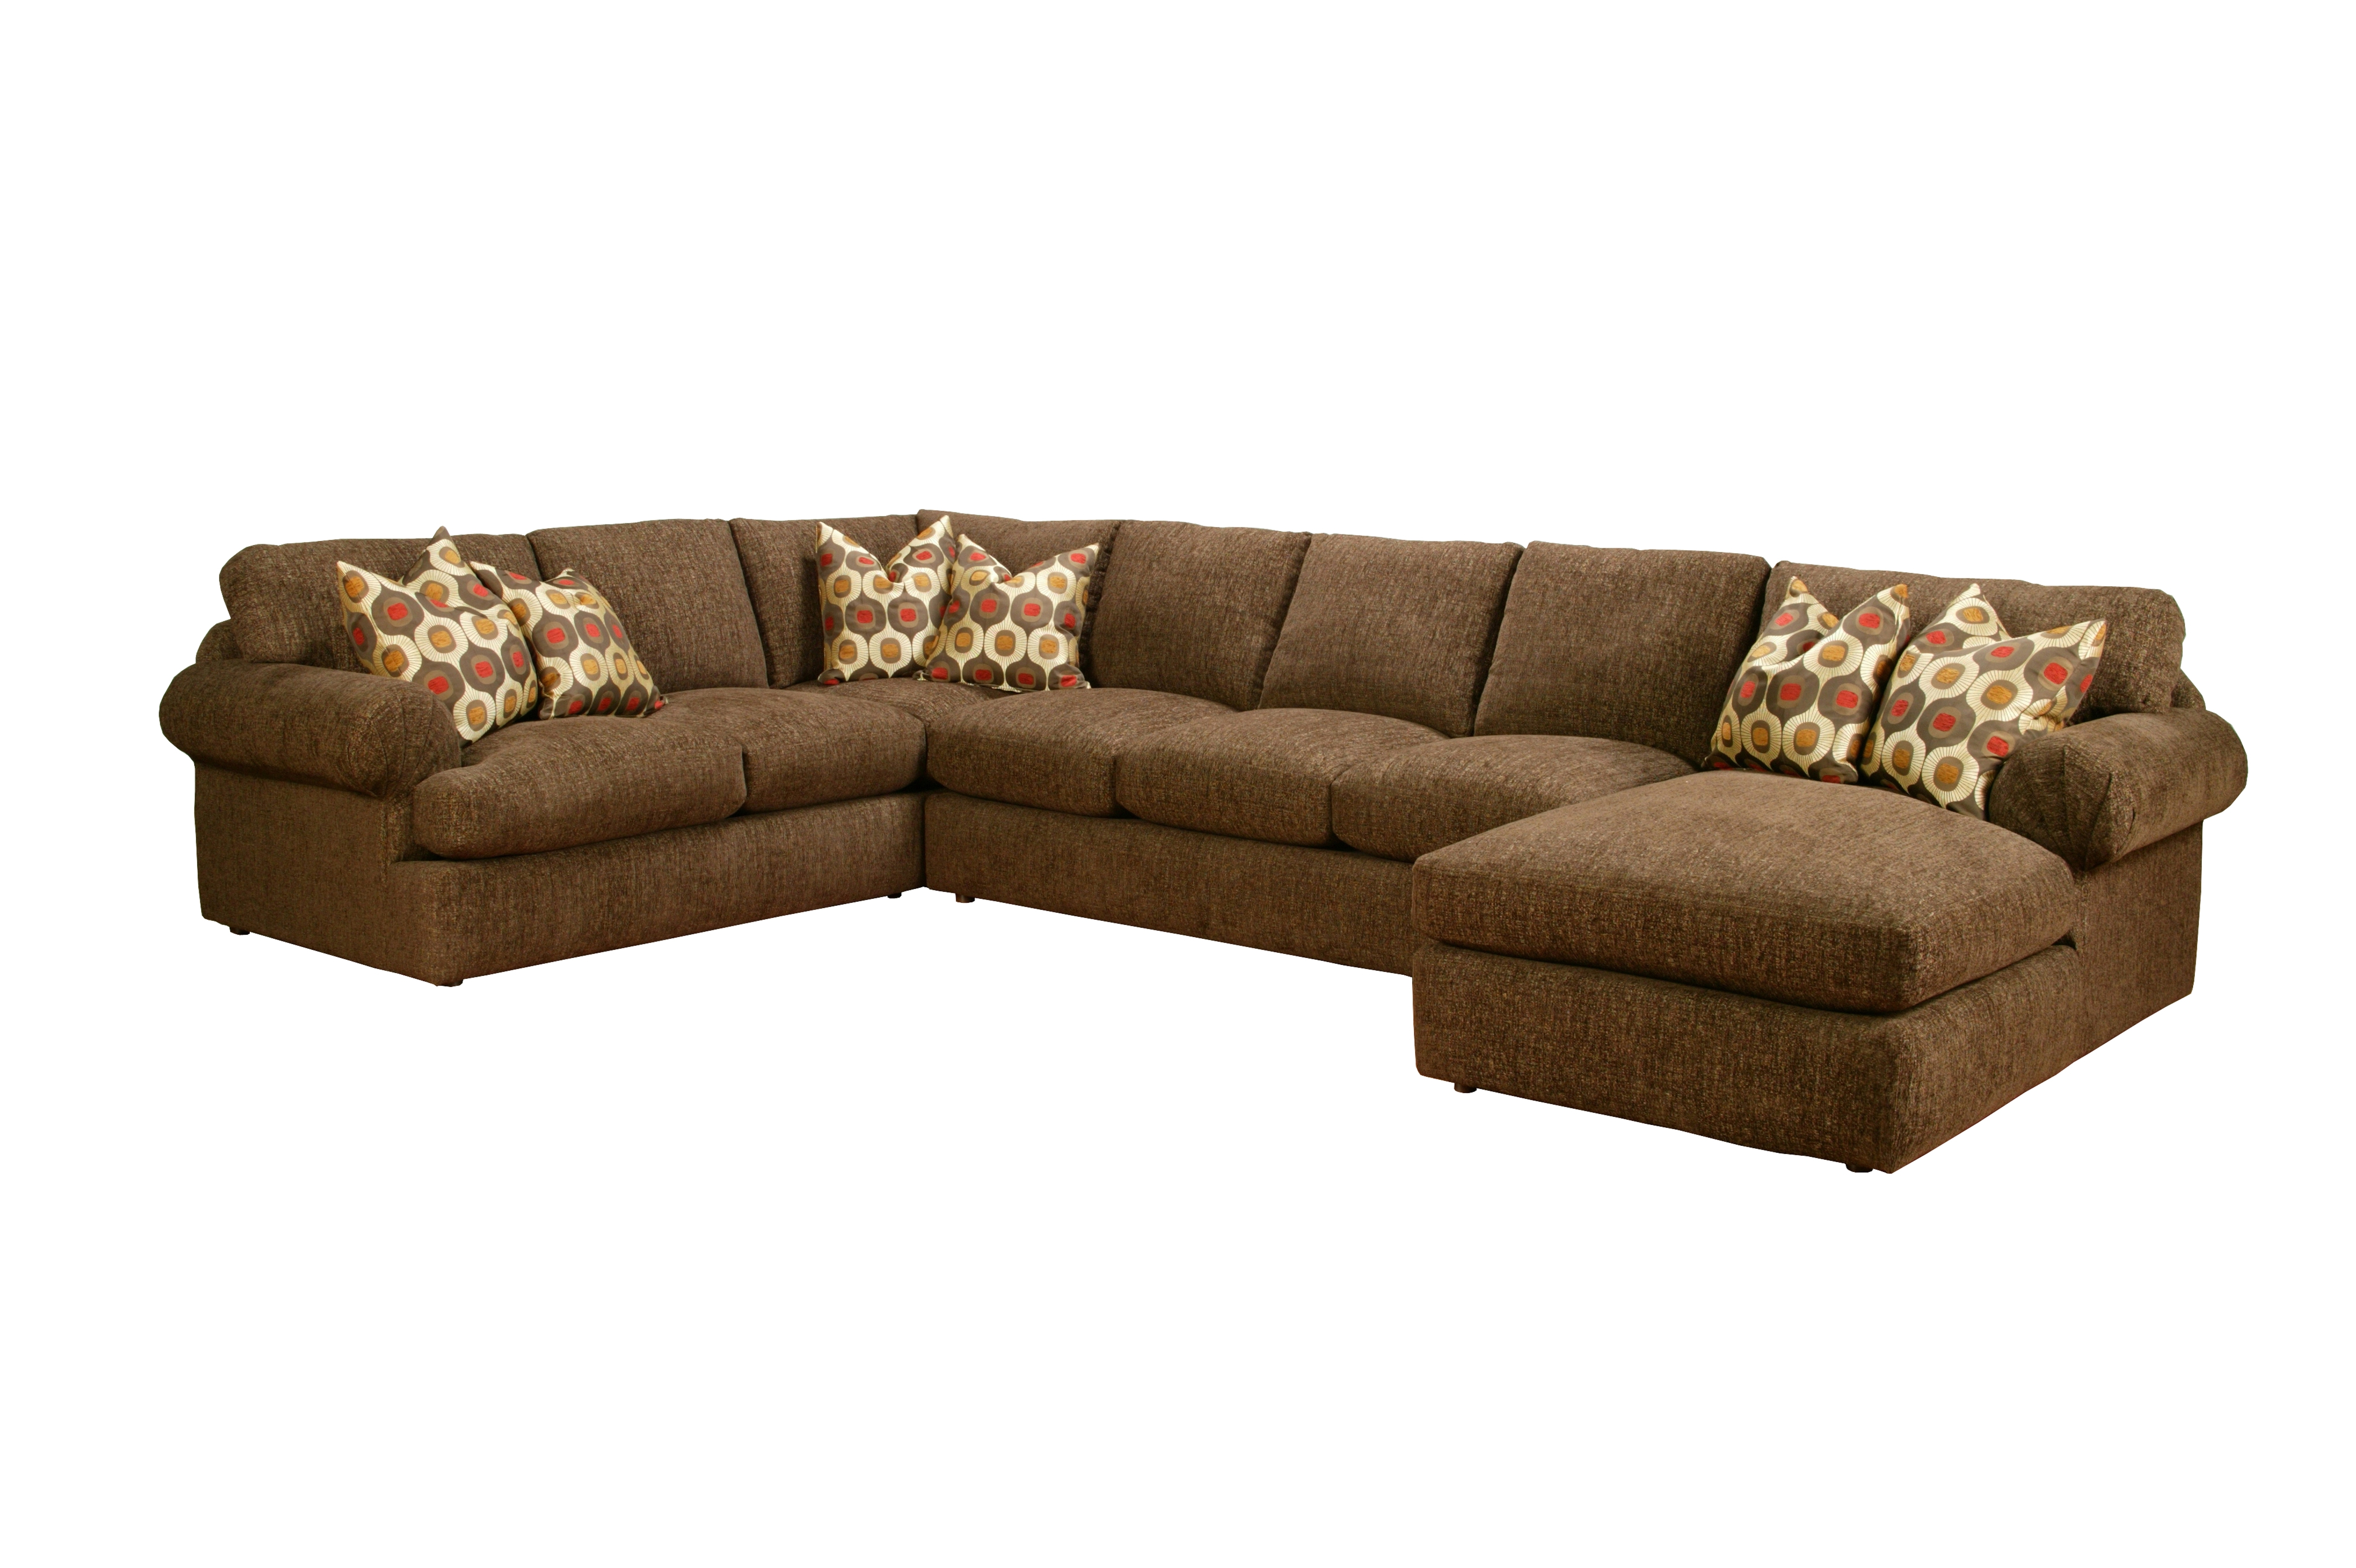 Robert Michael Fifth Ave Sofa Sectionals Phoenix Arizona Regarding 2017 Phoenix Arizona Sectional Sofas (View 14 of 15)